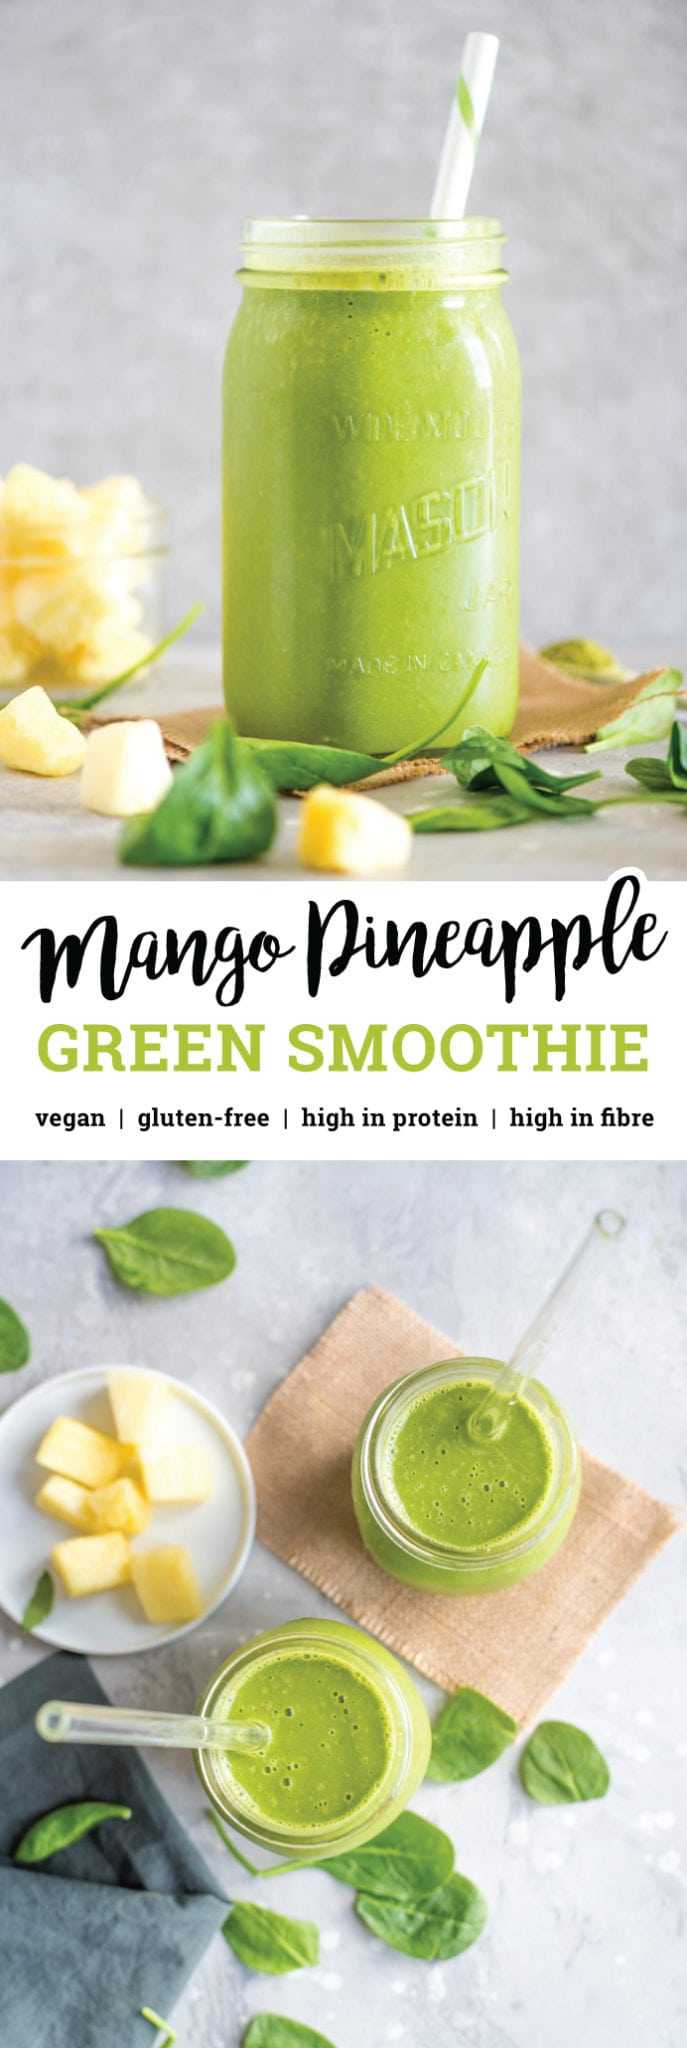 Try this easy, Healthy Green Mango Pineapple Smoothie for breakfast or a post-workout snack. It's made almond milk and 2 cups of spinach and cucumber that you'll never guess are in there! High in protein and fibre.#smoothie #smoothierecipes #smoothierecipe #breakfastrecipes #veganrecipes #mango #pineapple #spinach #greensmoothie #breakfastideas #easybreakfasts #healthybreakfasts #healthyrecipes #vegansmoothie #proteinshake #highproteinbreakfast #almondmilk